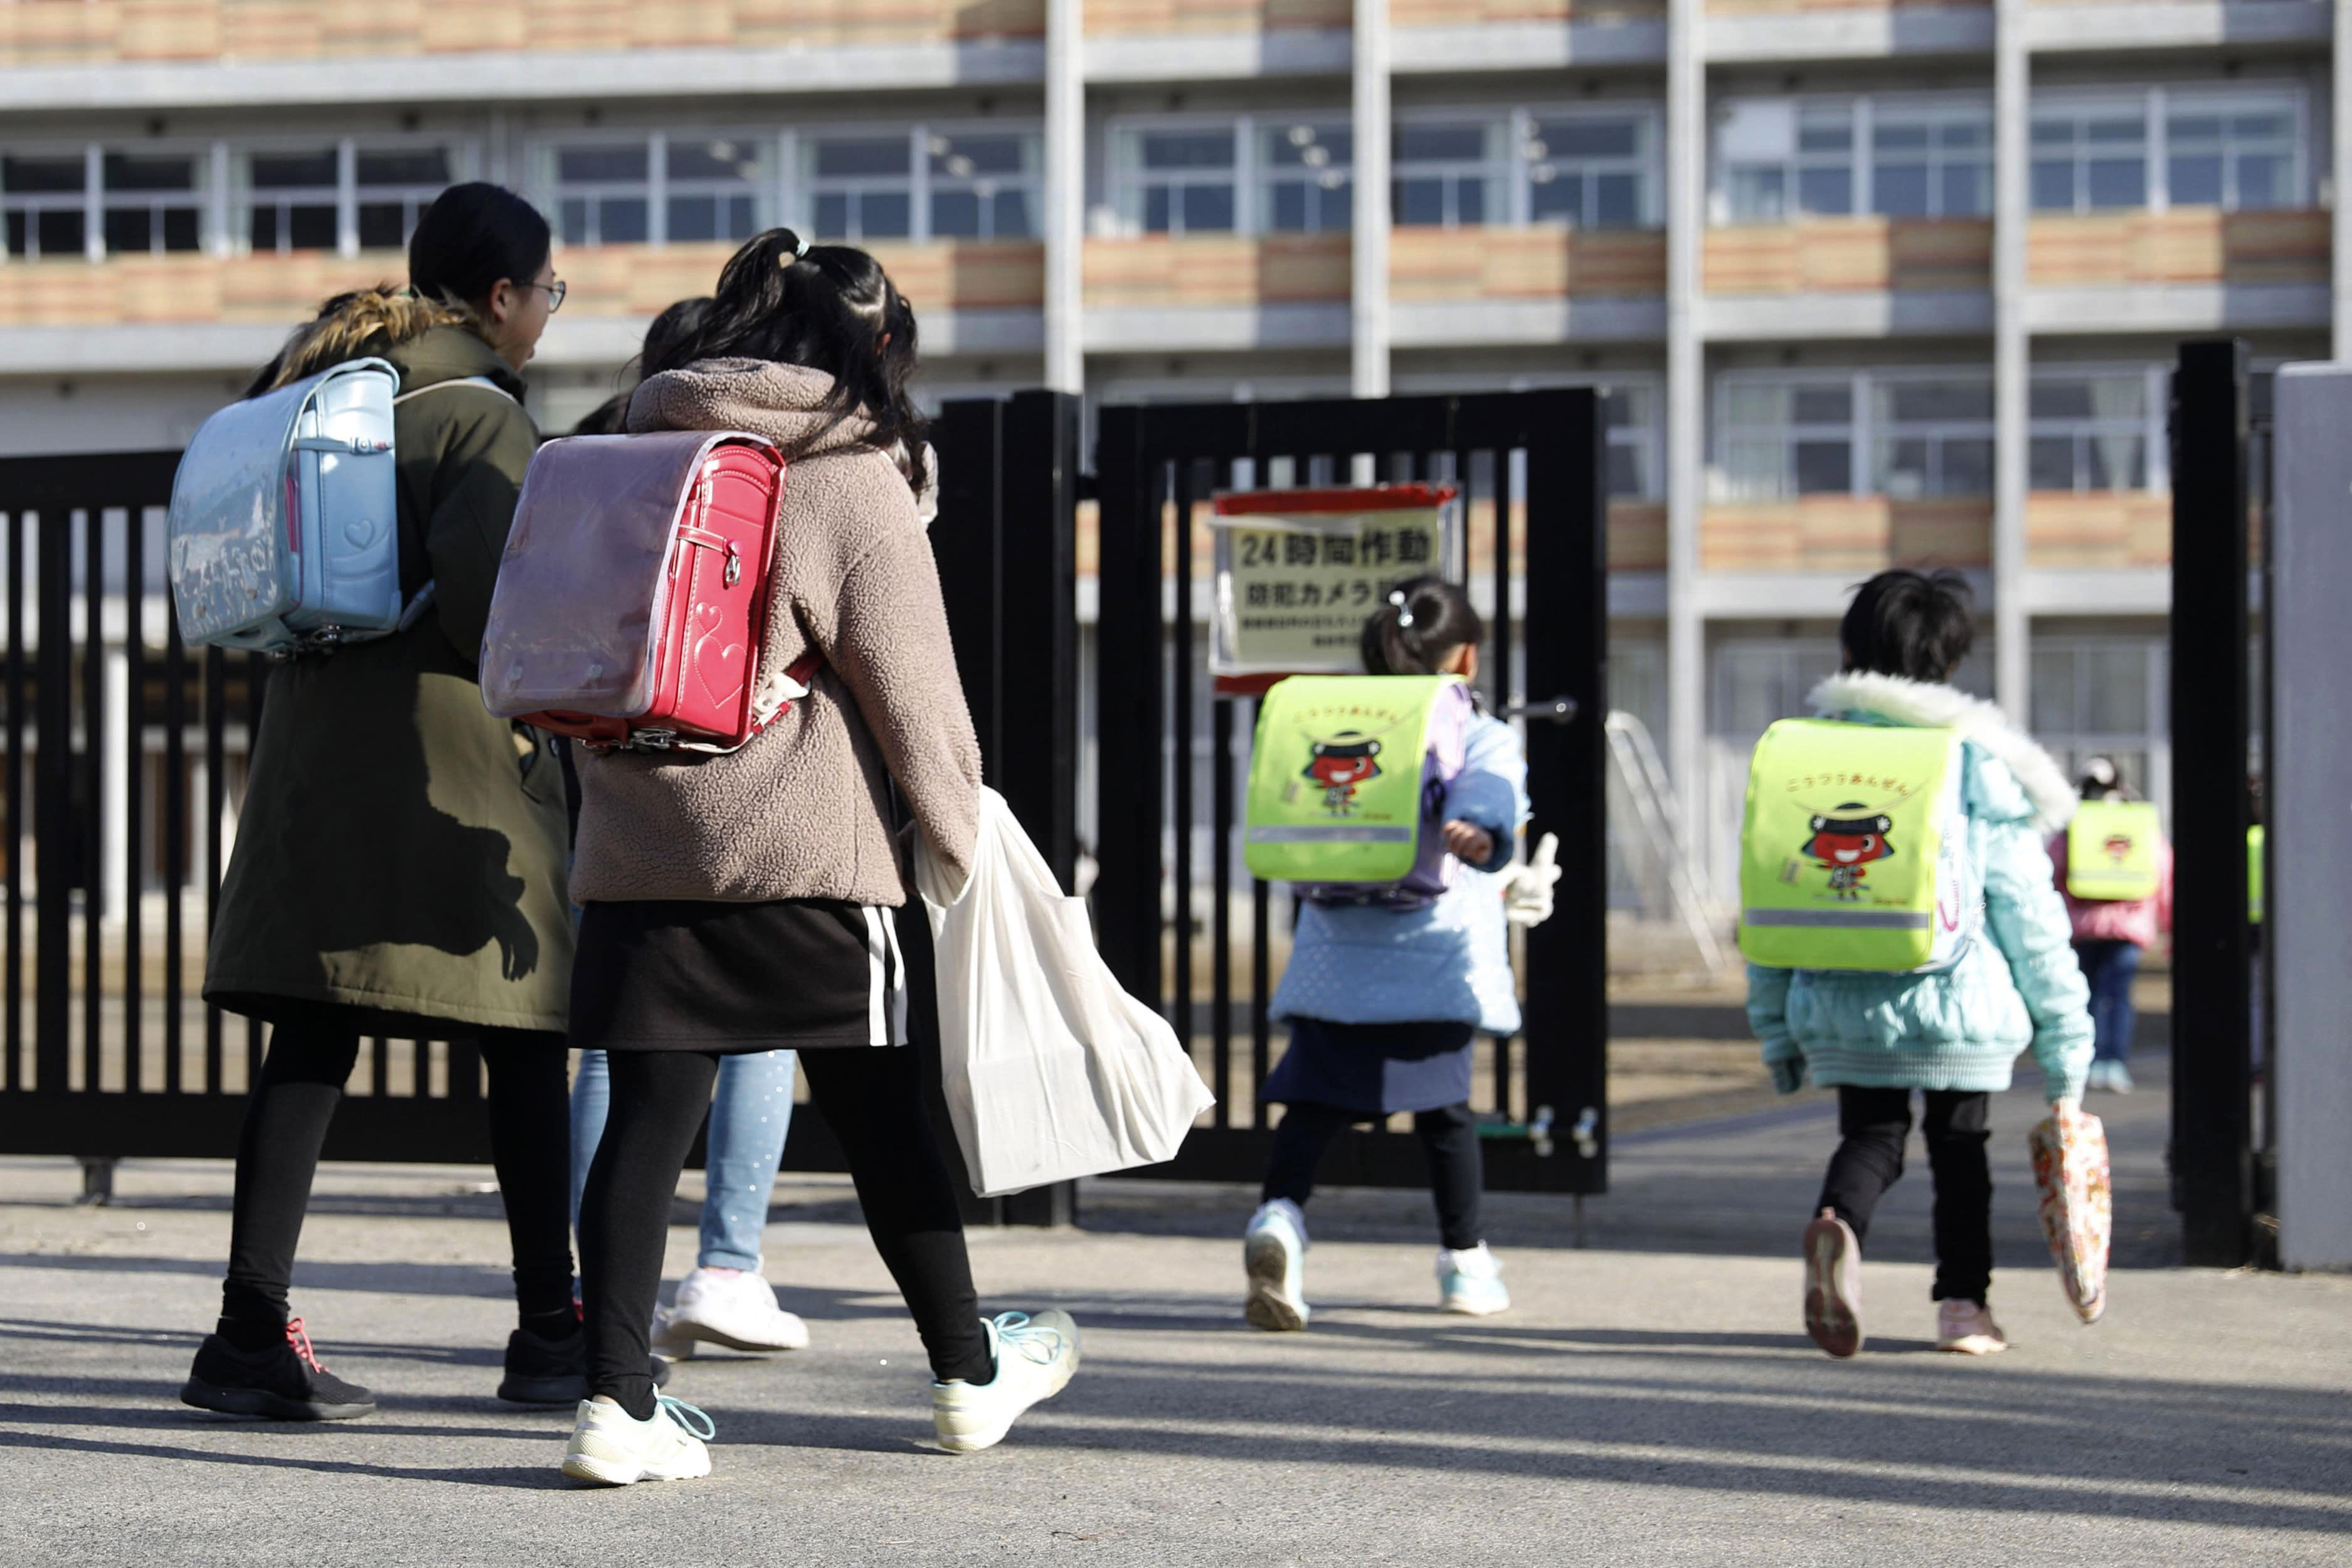 Students arrives at their elementary school in Sendai, northern Japan, Friday morning, Feb. 28, 2020, a day after Japanese Prime Minister Shinzo Abe's announcement. Abe asked all elementary, middle and high schools nationwide on Thursday to close until late March from March 2 to help control the spread of the new virus in the country. (Hironori Asakawa/Kyodo News via AP)